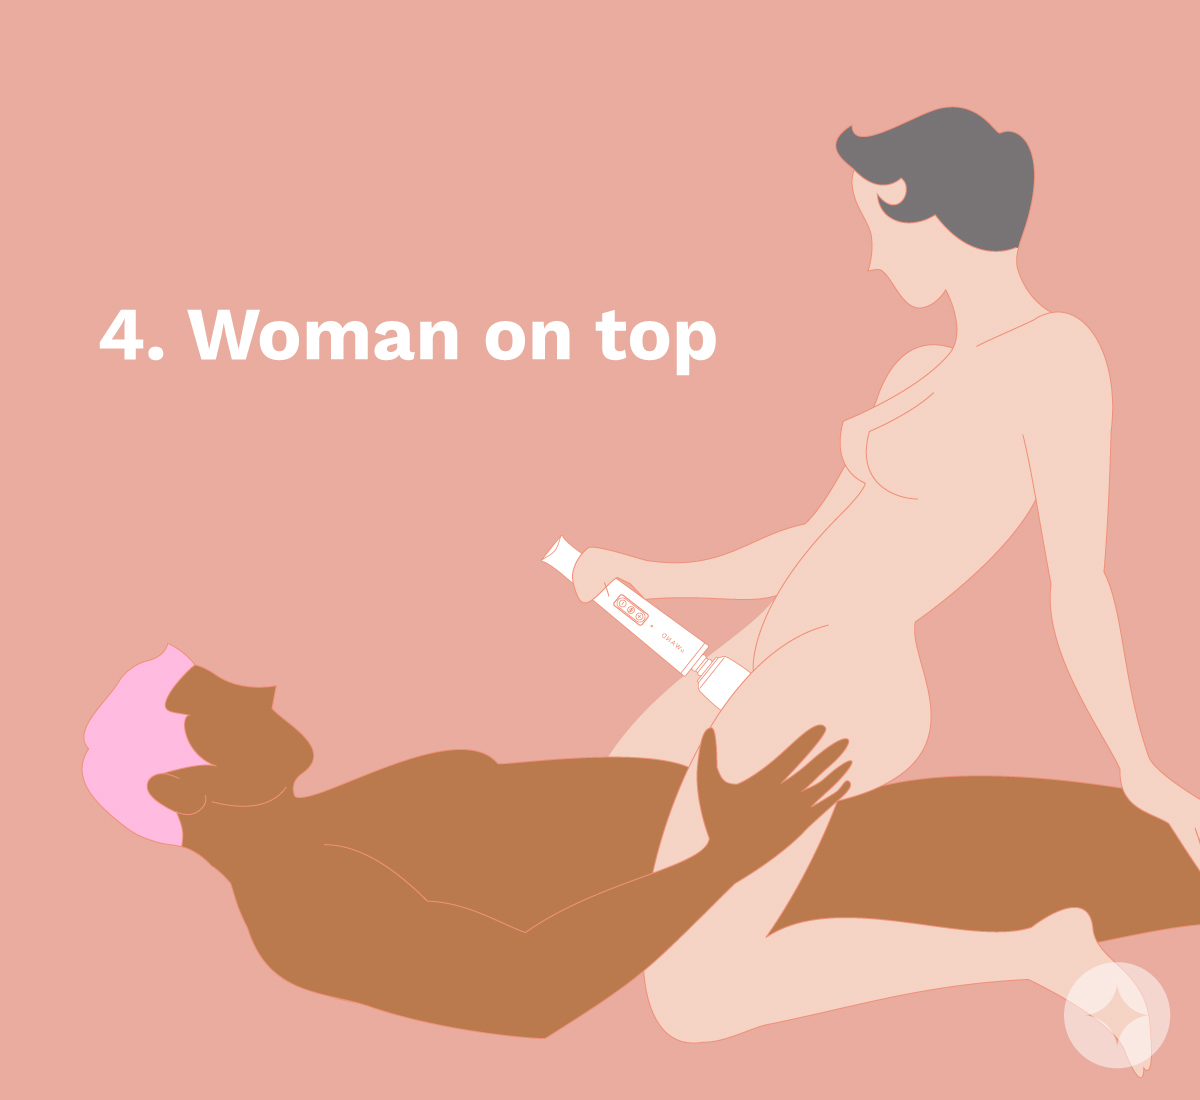 The going on top sex position allows the person on top to dictate how to use the sex toy with a partner